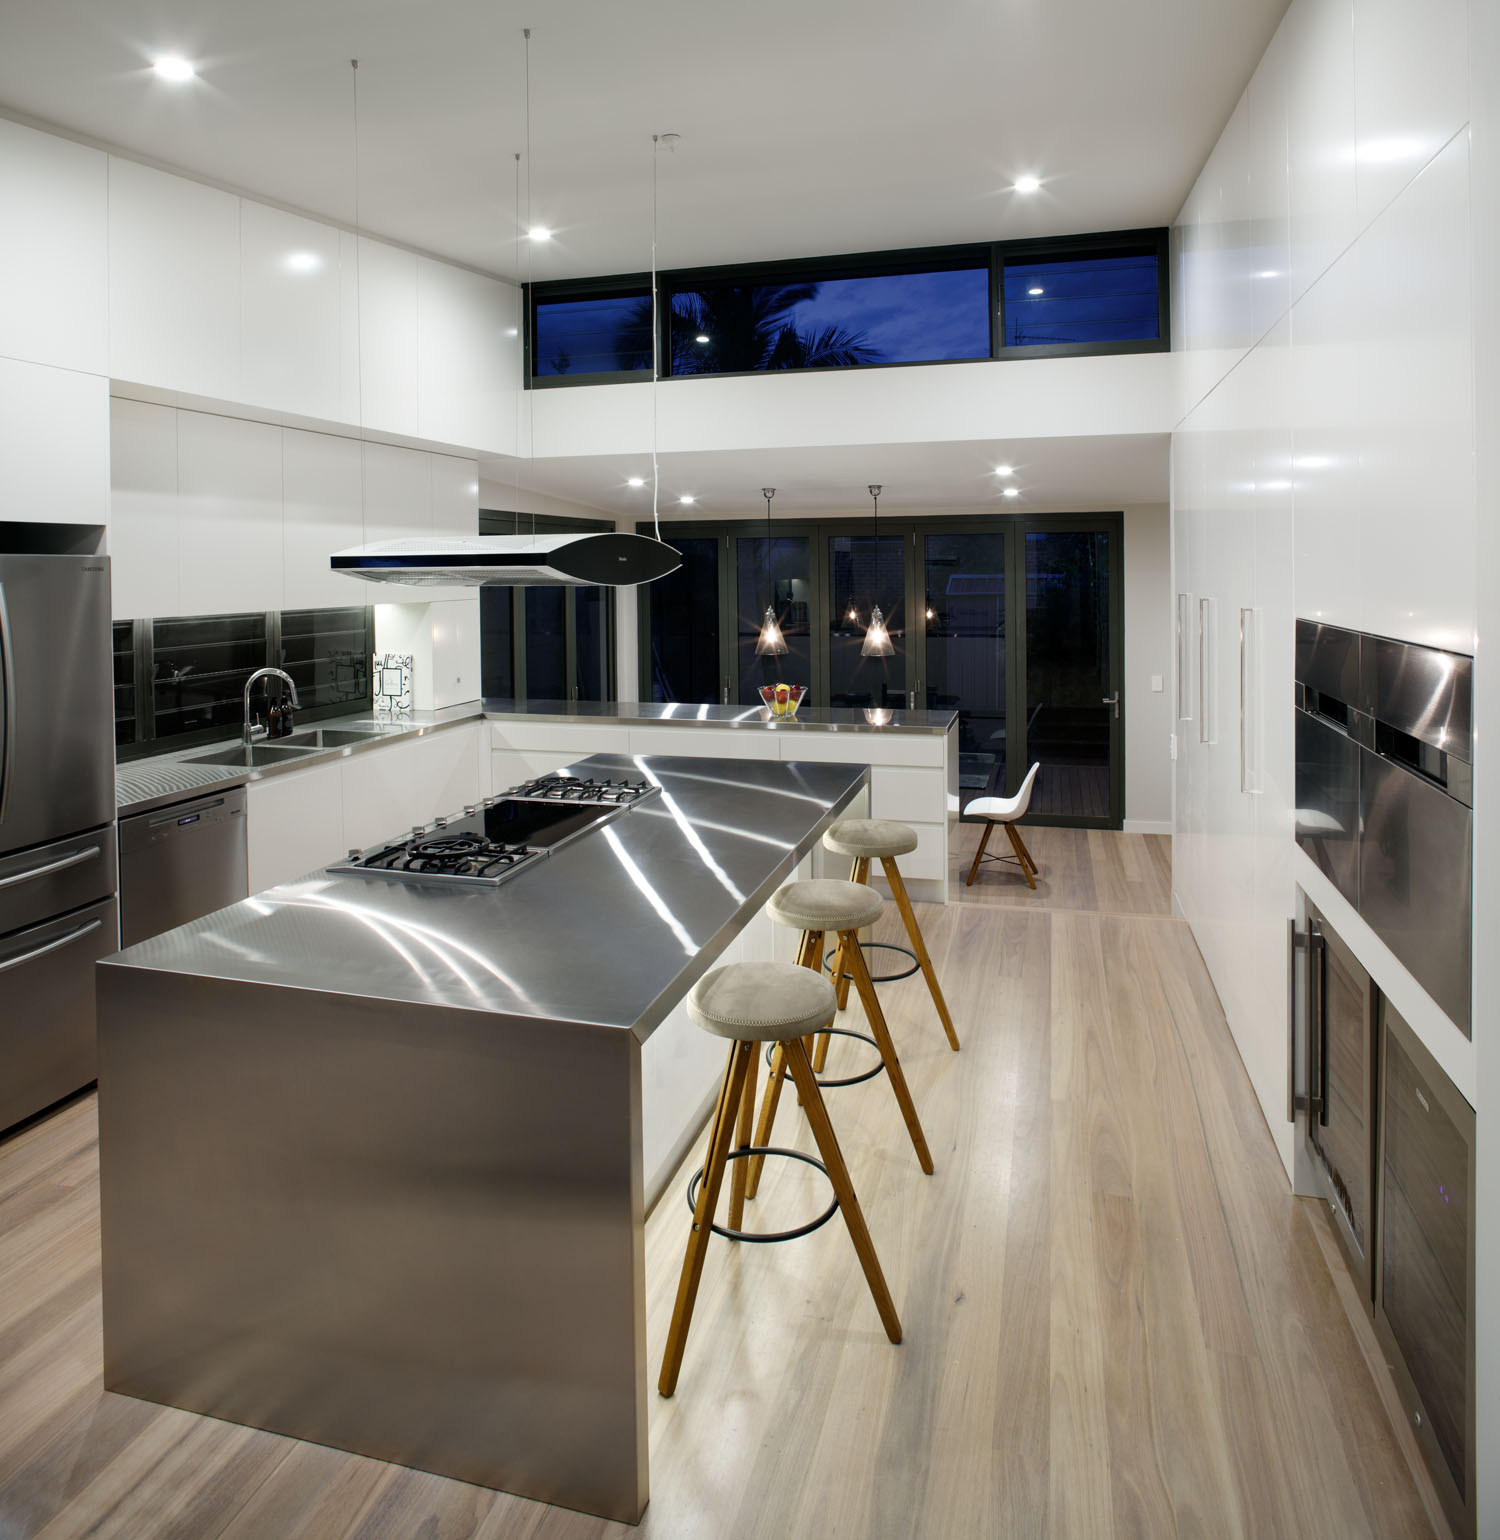 Industrial chic: kitchen design